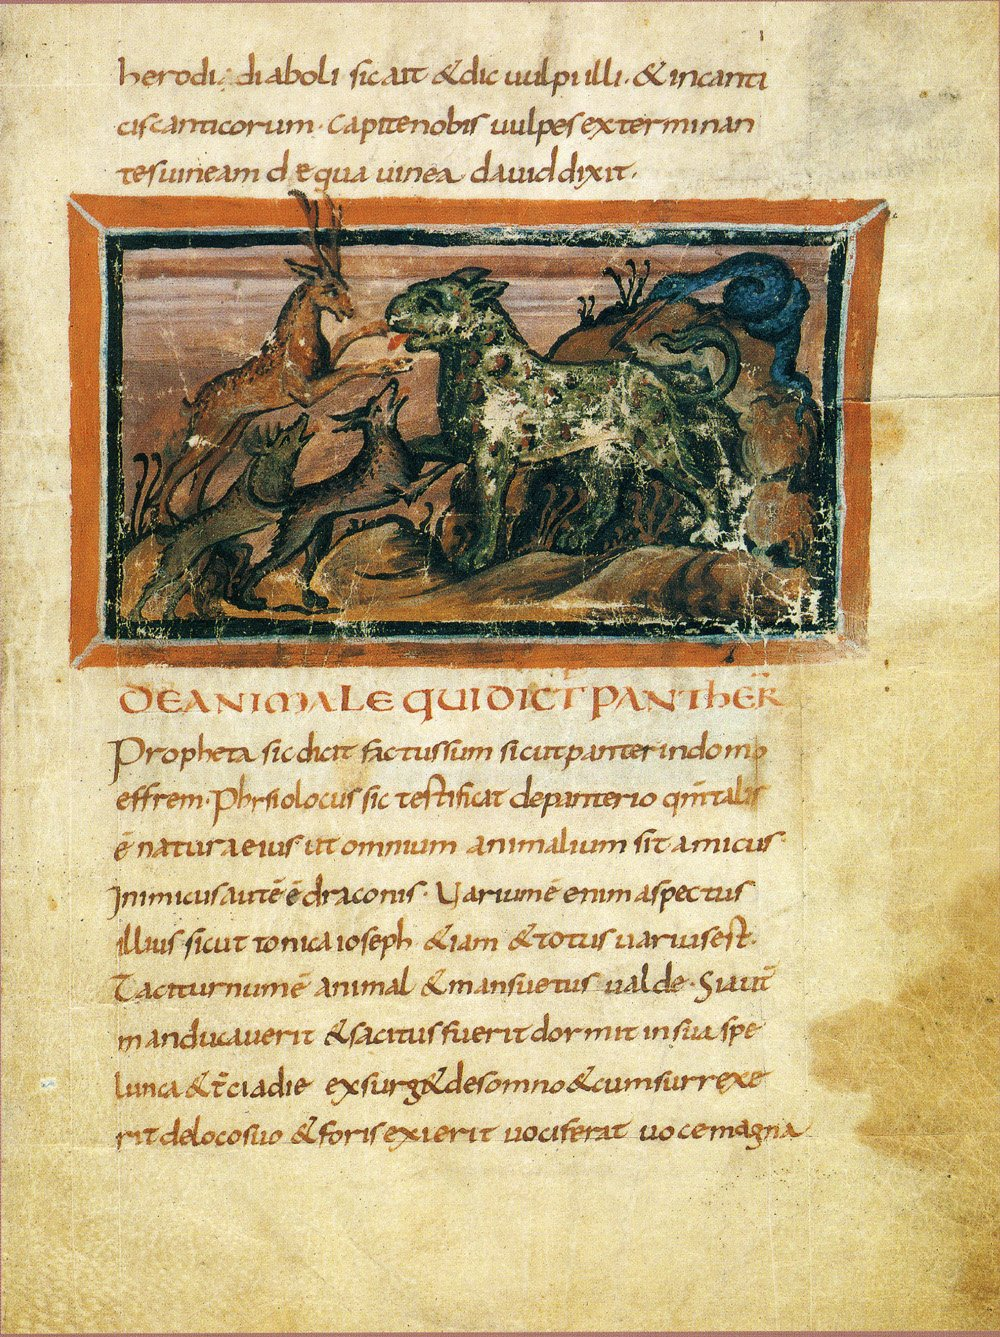 Panther, Bern Physiologus, 9th century